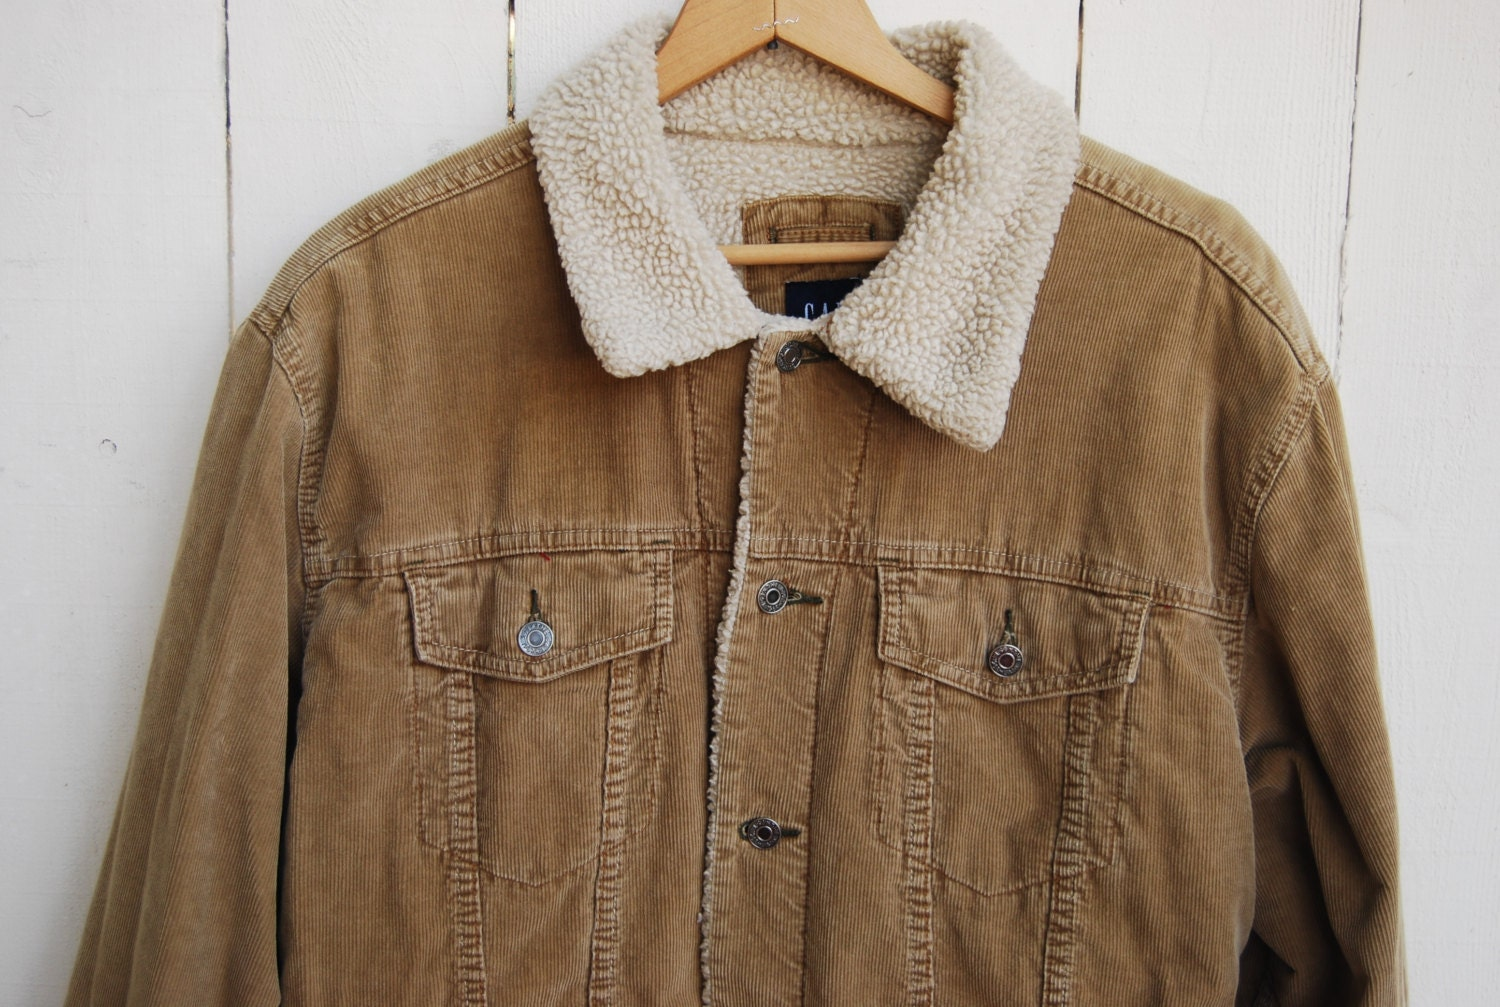 Casual warm heavy corduroy textured jacket by Jones New York. Jack is made of 99% cotton 1% spandex. Full button down front. Size Large 20 inch bust 19 inch sleeves 26 inches in length Item pictured is the item sold.